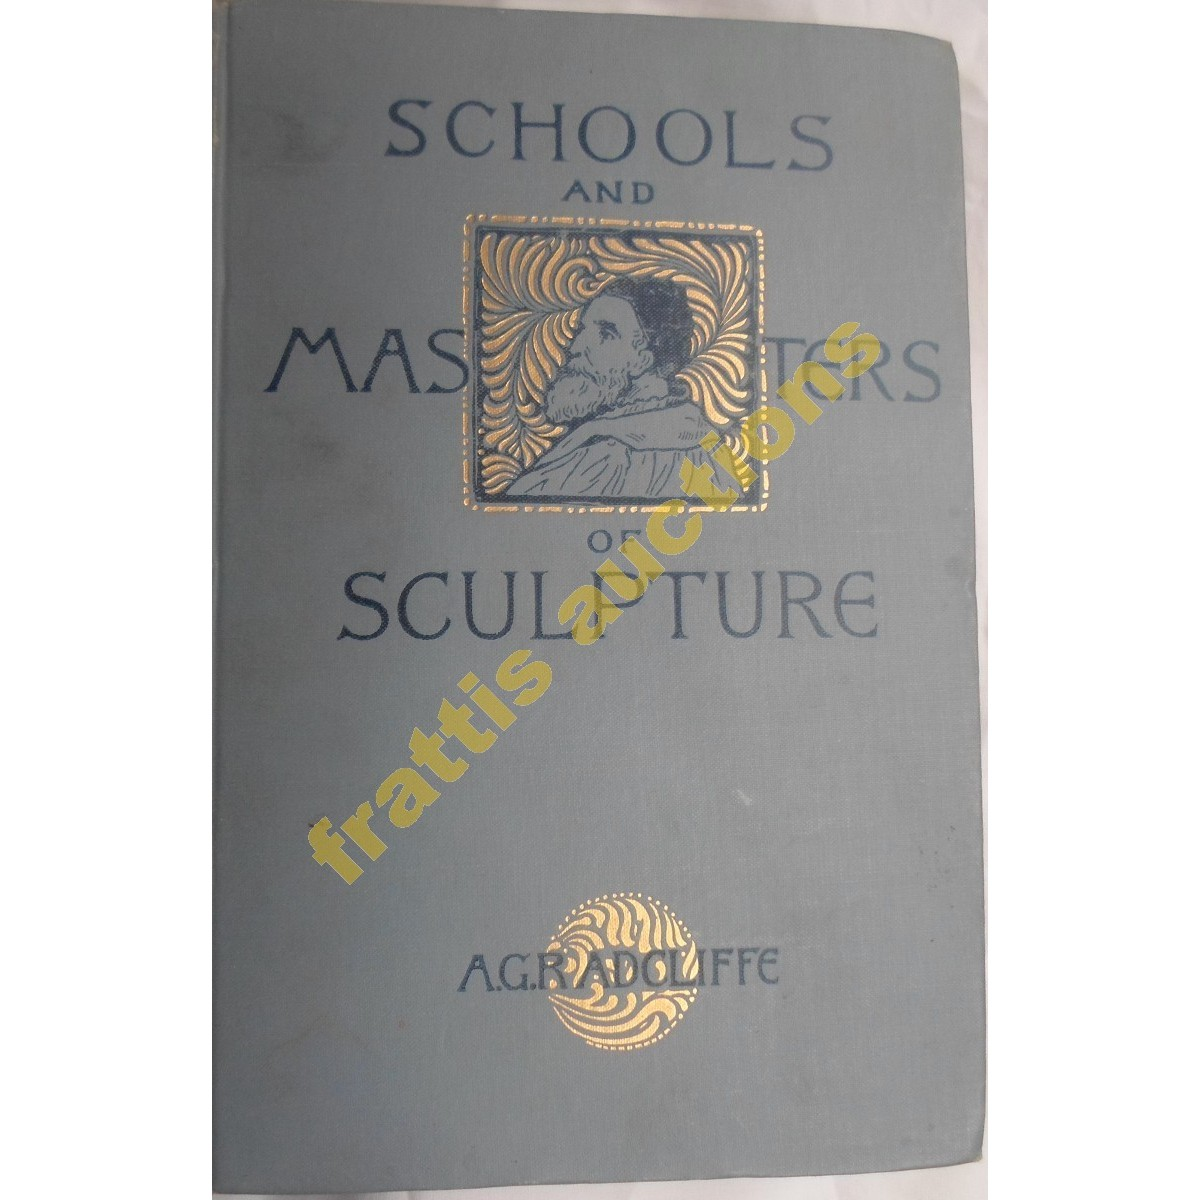 A. G. Radcliffe, A.G. Radcliffe, Schools and Masters of Sculpture. New York, 1894